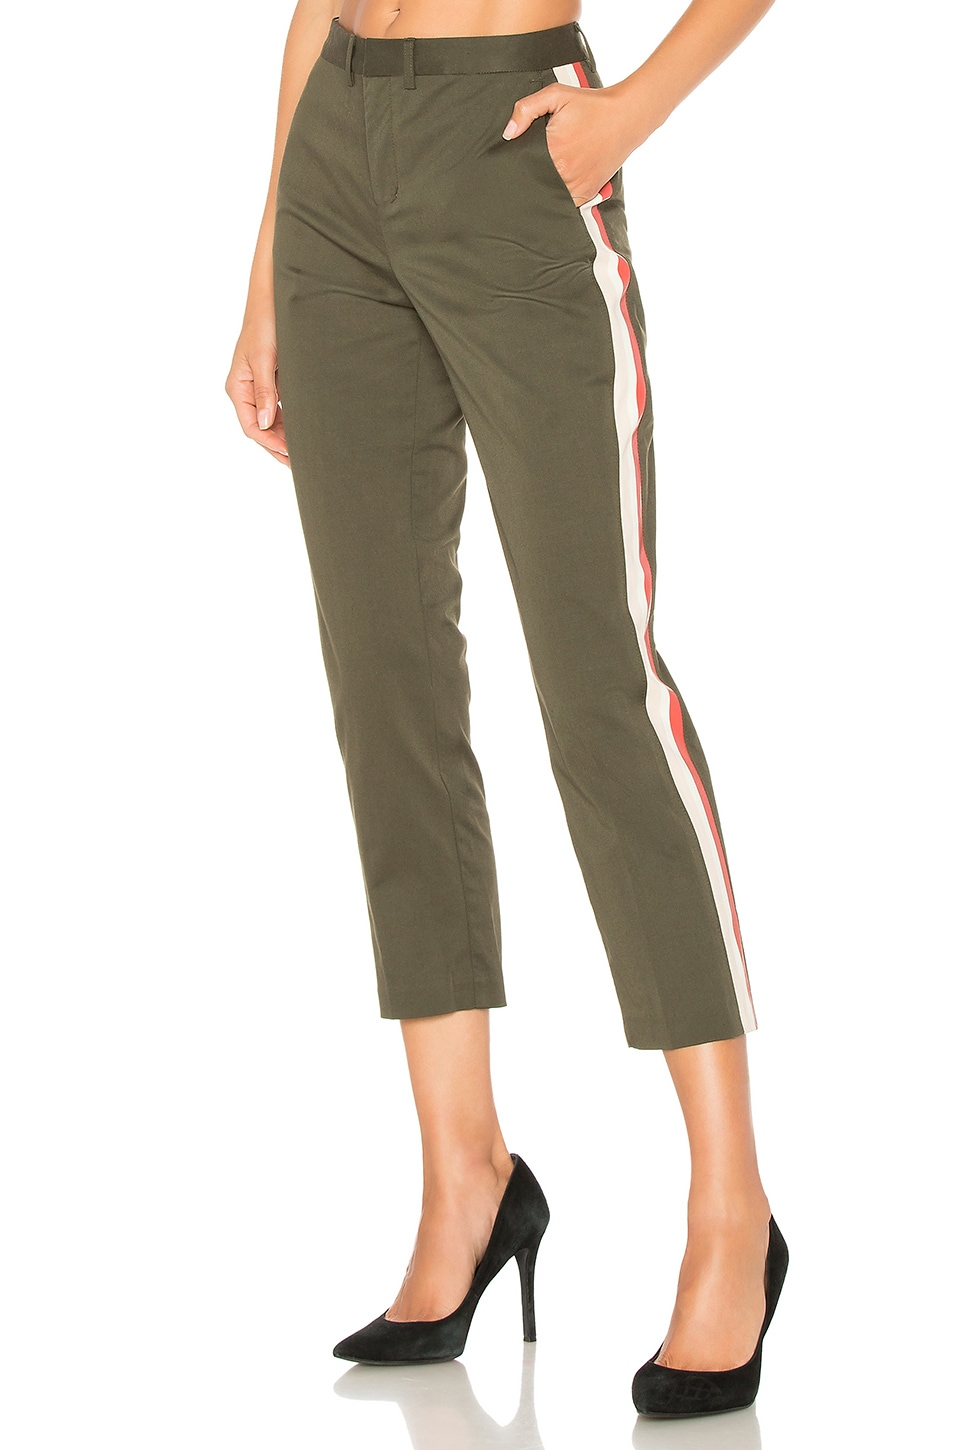 Le Superbe Honore Pant in Dark Olive A